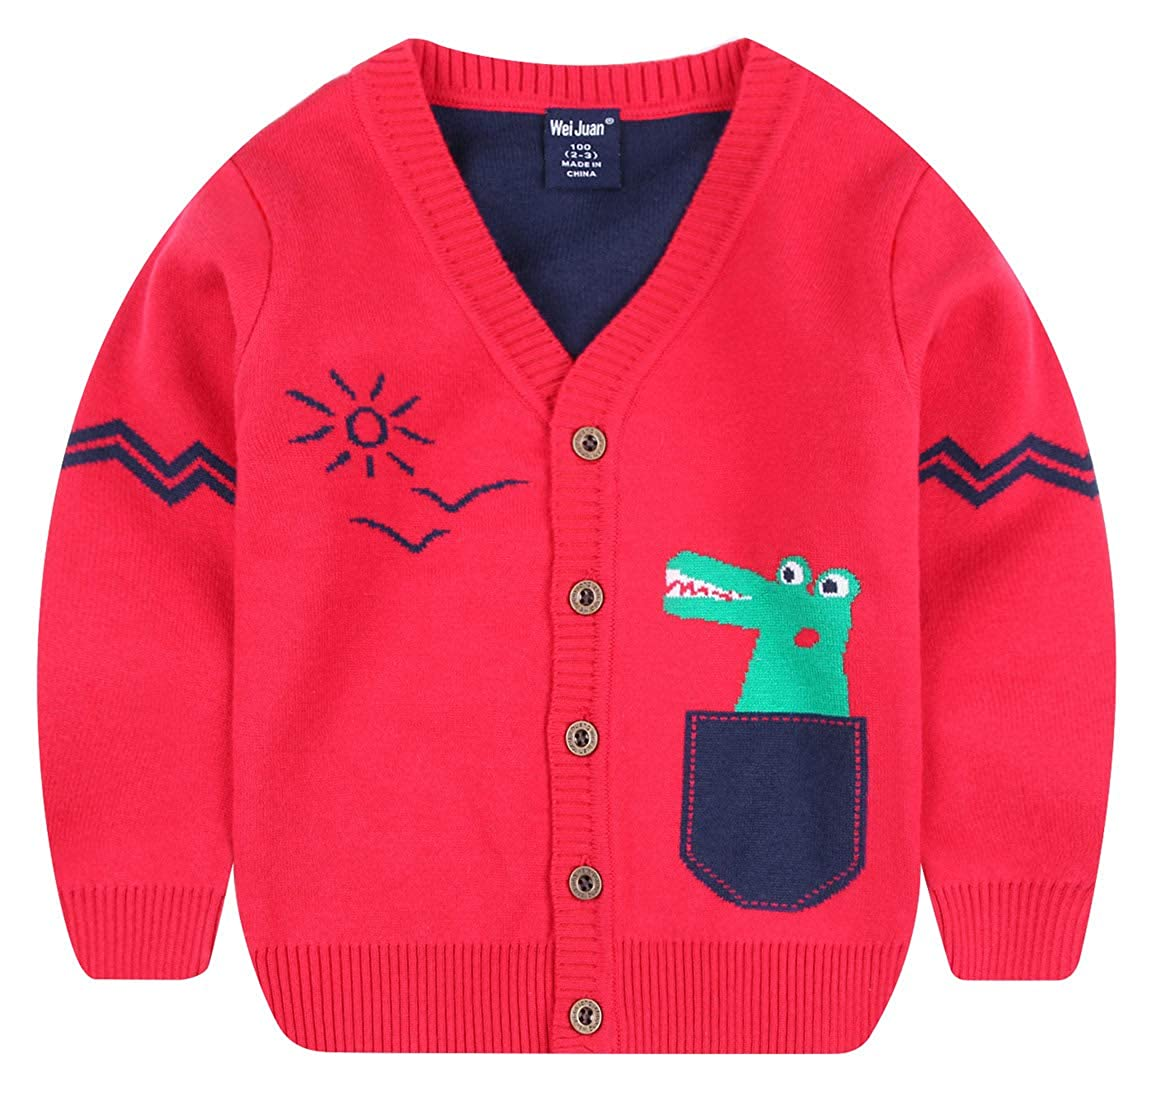 Wei juan Boys Sweater Cartoon Crocodile Long Sleeve Button Down Warm Cardigan 2-7T